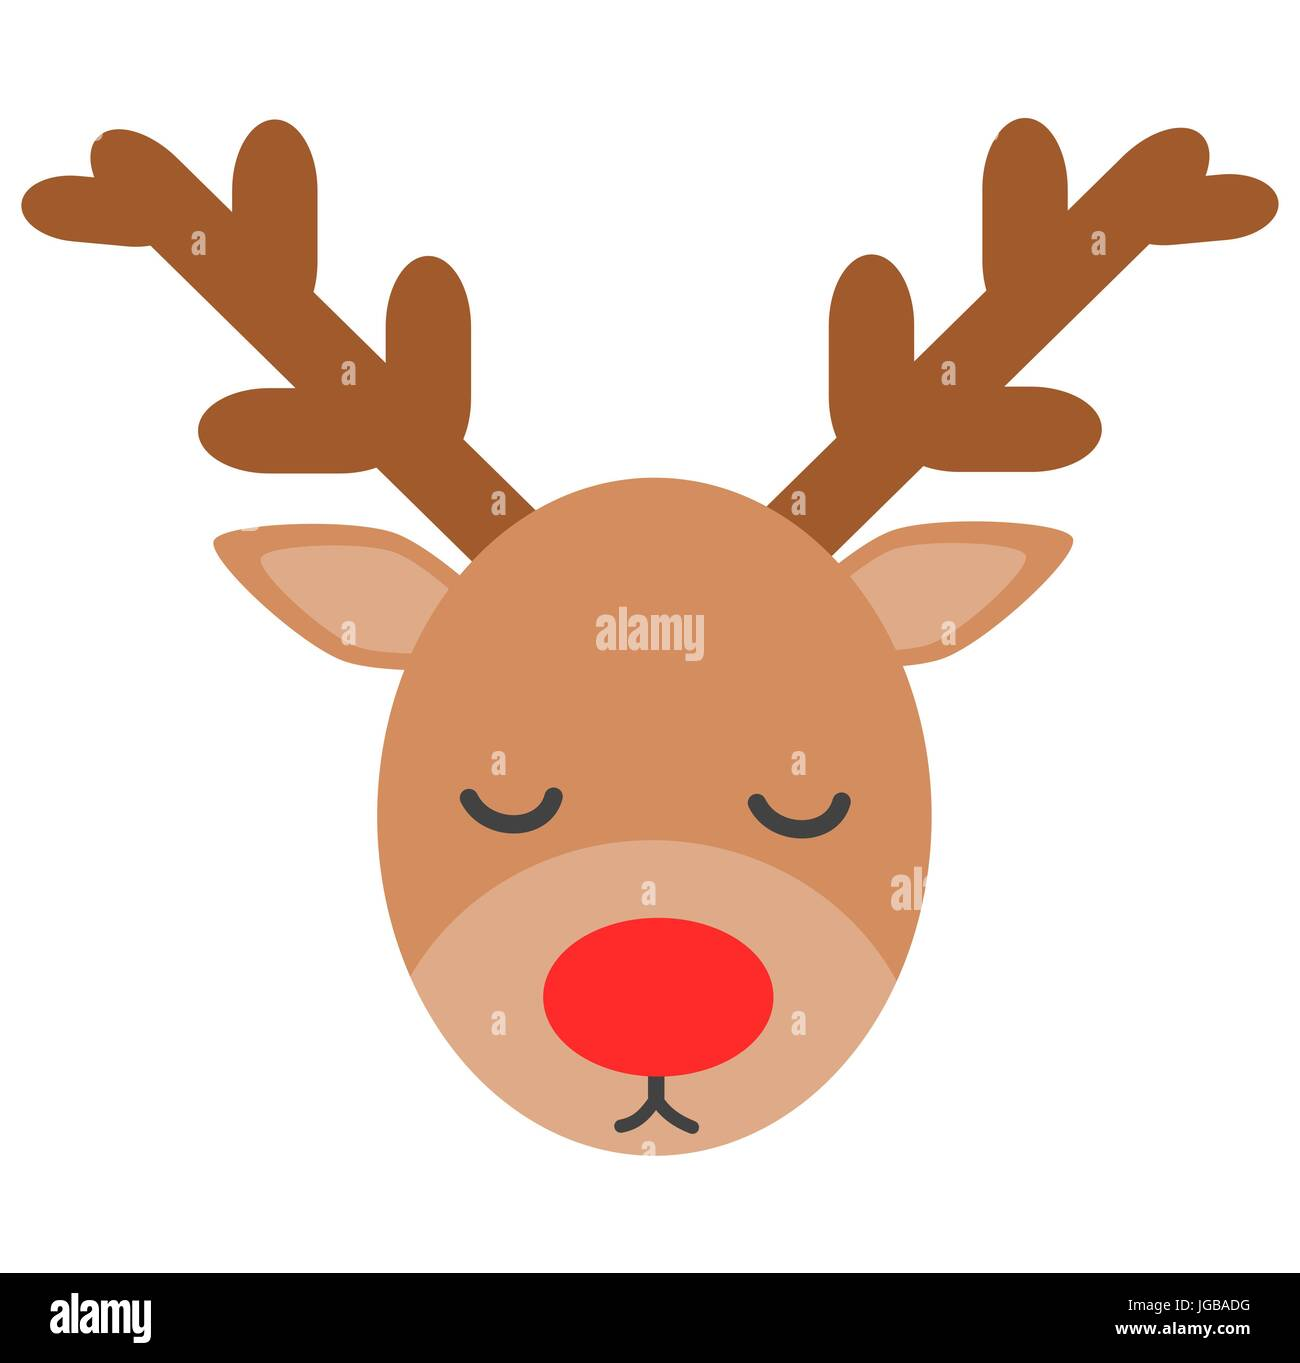 Cartoon Reindeer High Resolution Stock Photography And Images Alamy